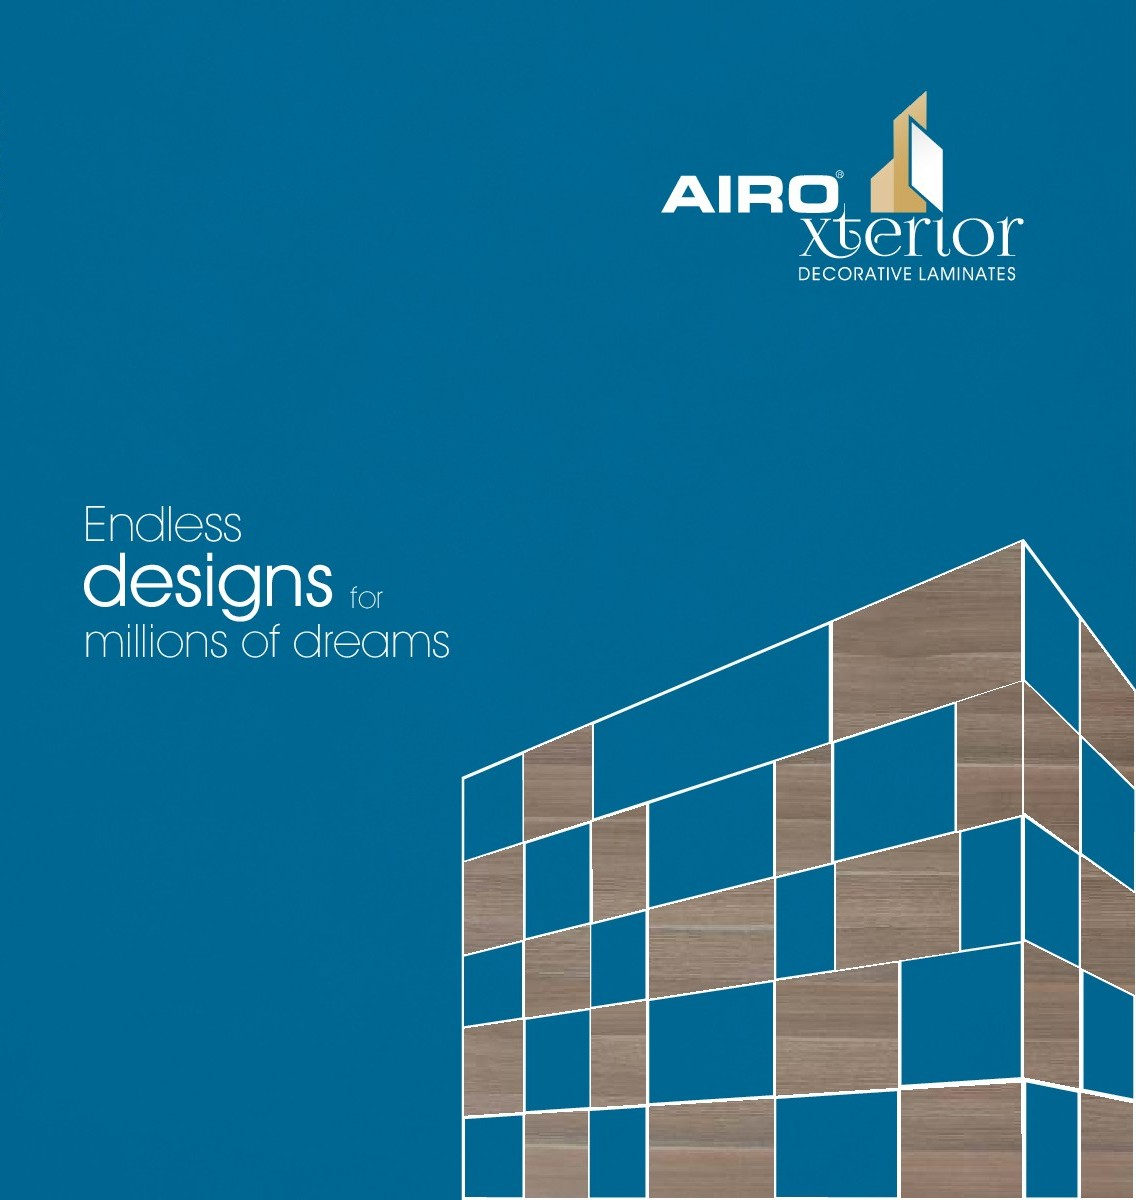 AIROLAM DECORATIVE LAMINATE Products Catalogue